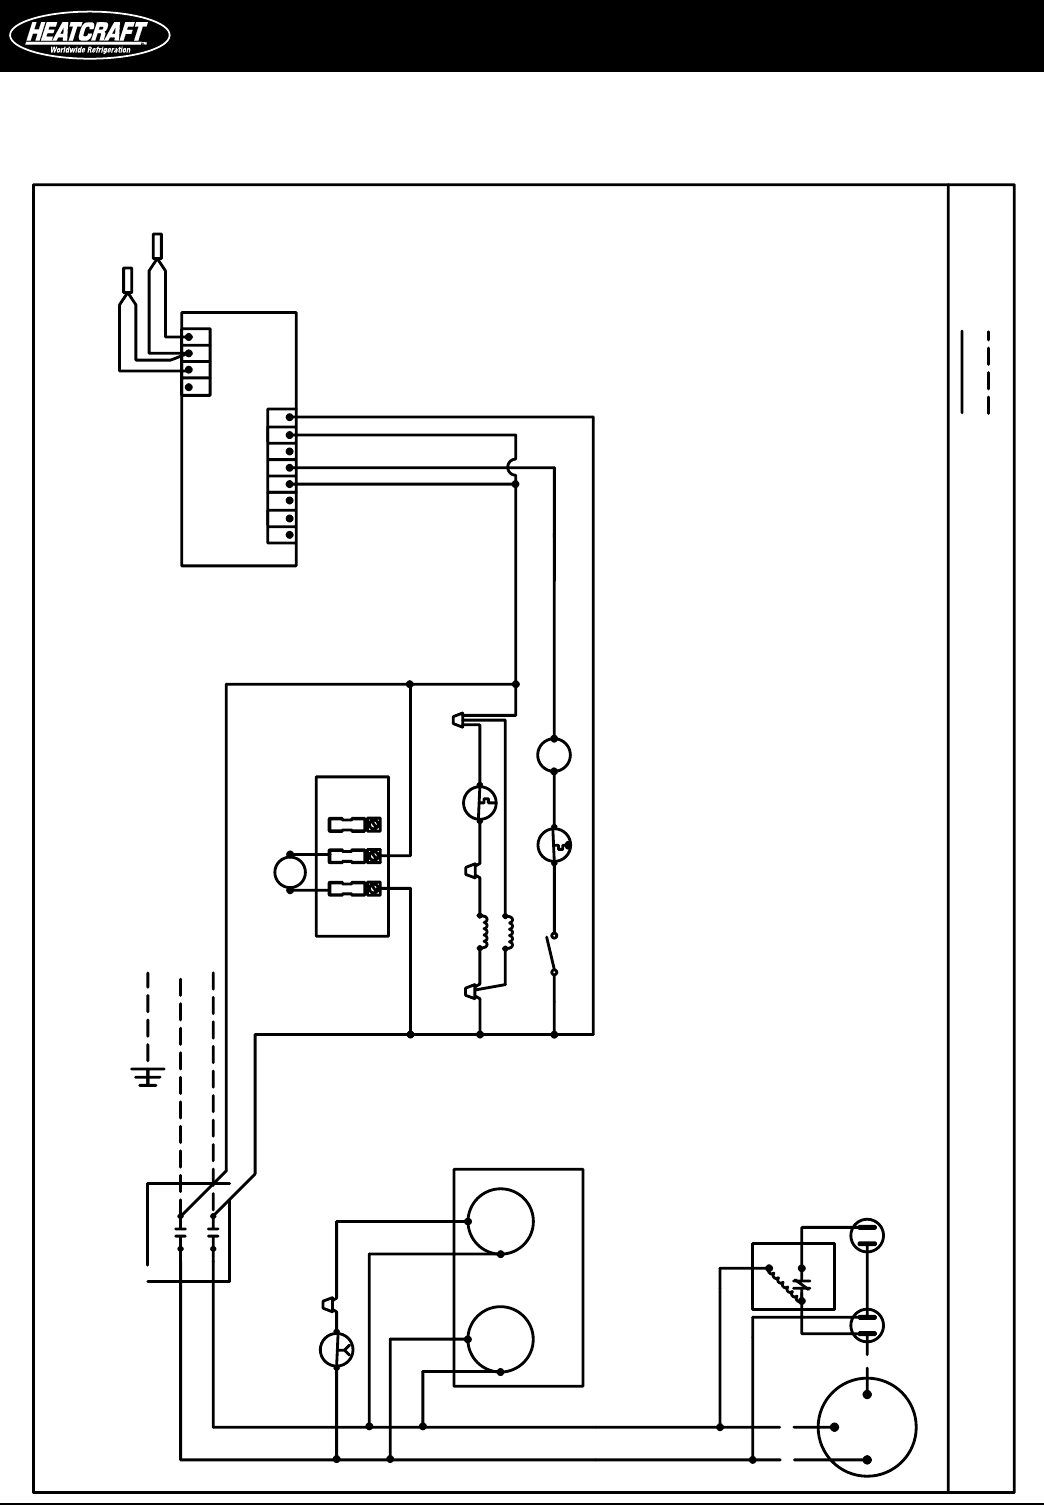 55587f91 c859 def4 0921 730c5709c050 bg10 page 16 of heatcraft refrigeration products refrigerator pro3 user heatcraft condensing units wiring diagram at crackthecode.co